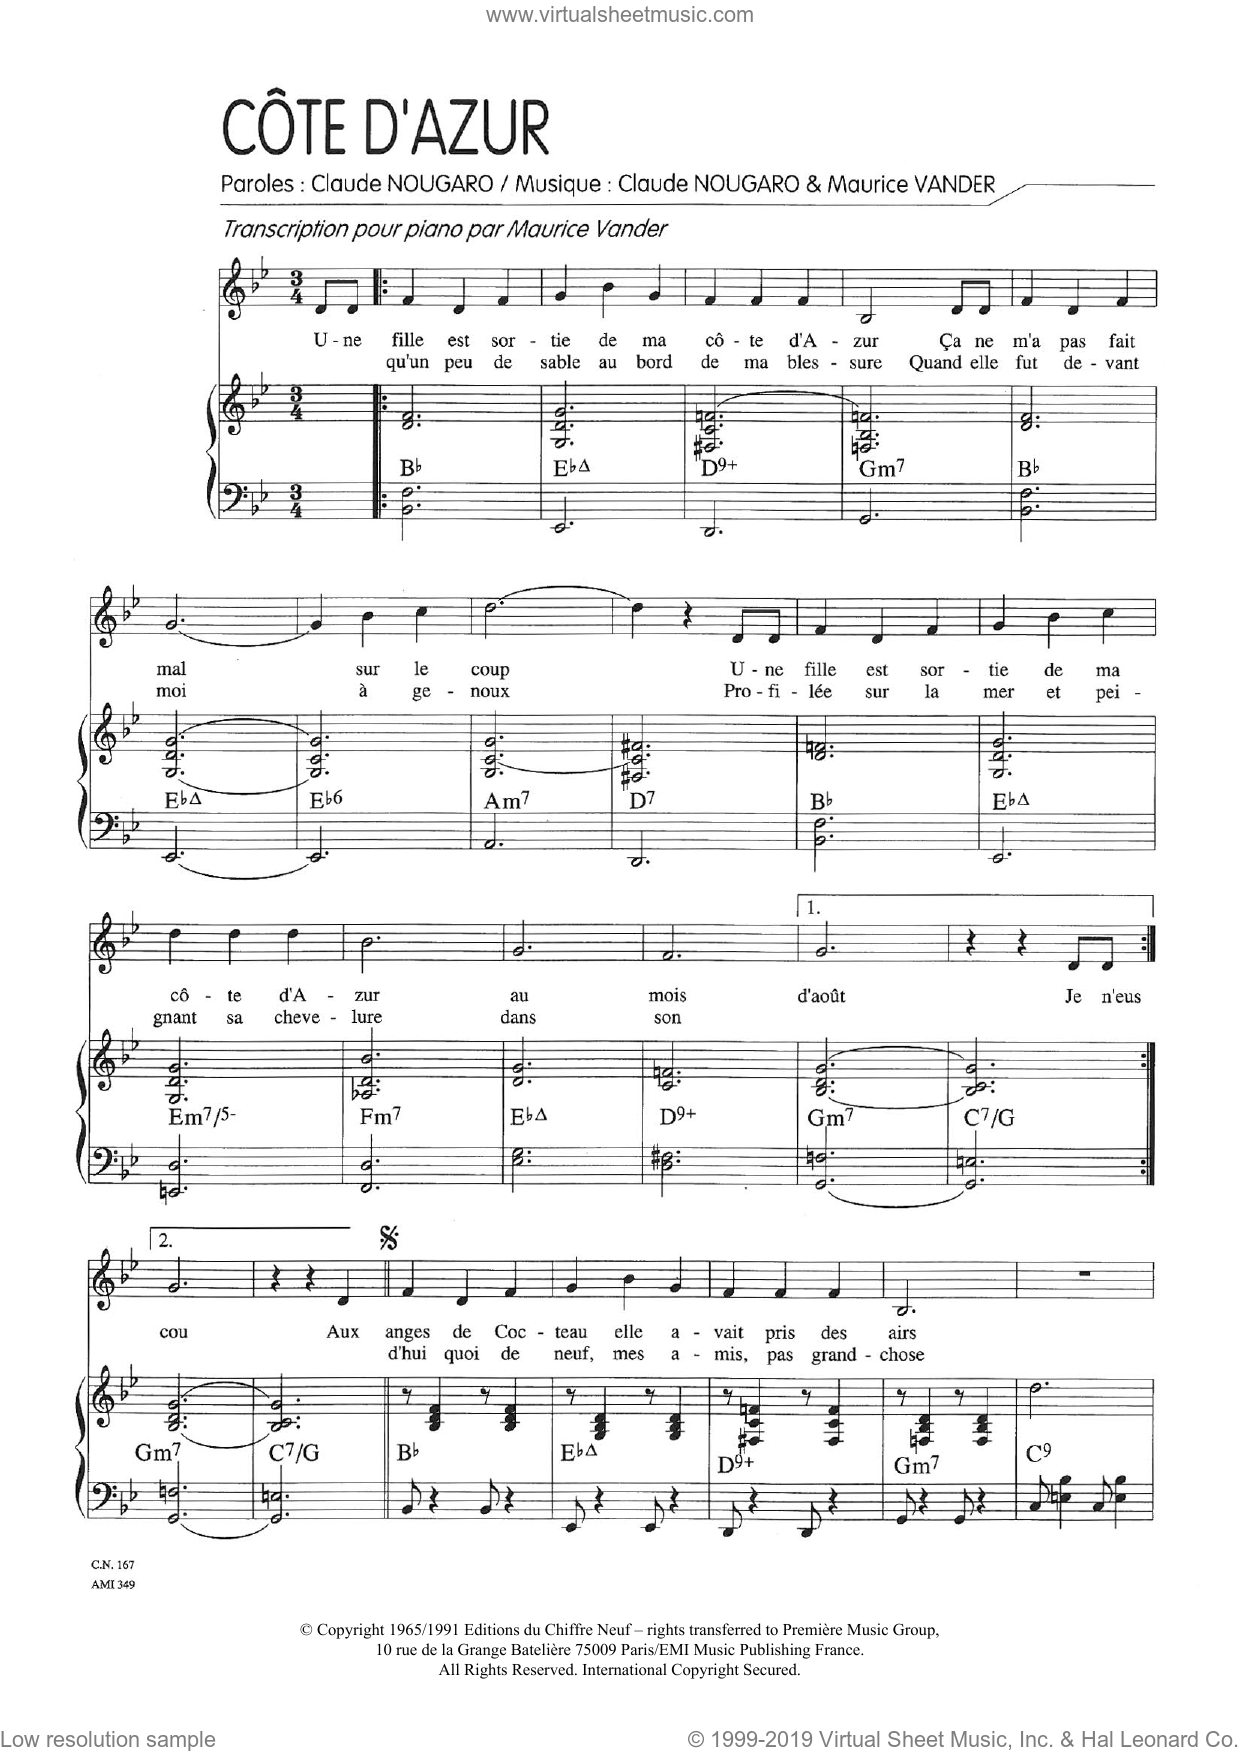 Cote D'azur sheet music for voice and piano by Claude Nougaro and Maurice Vanderschueren, intermediate skill level